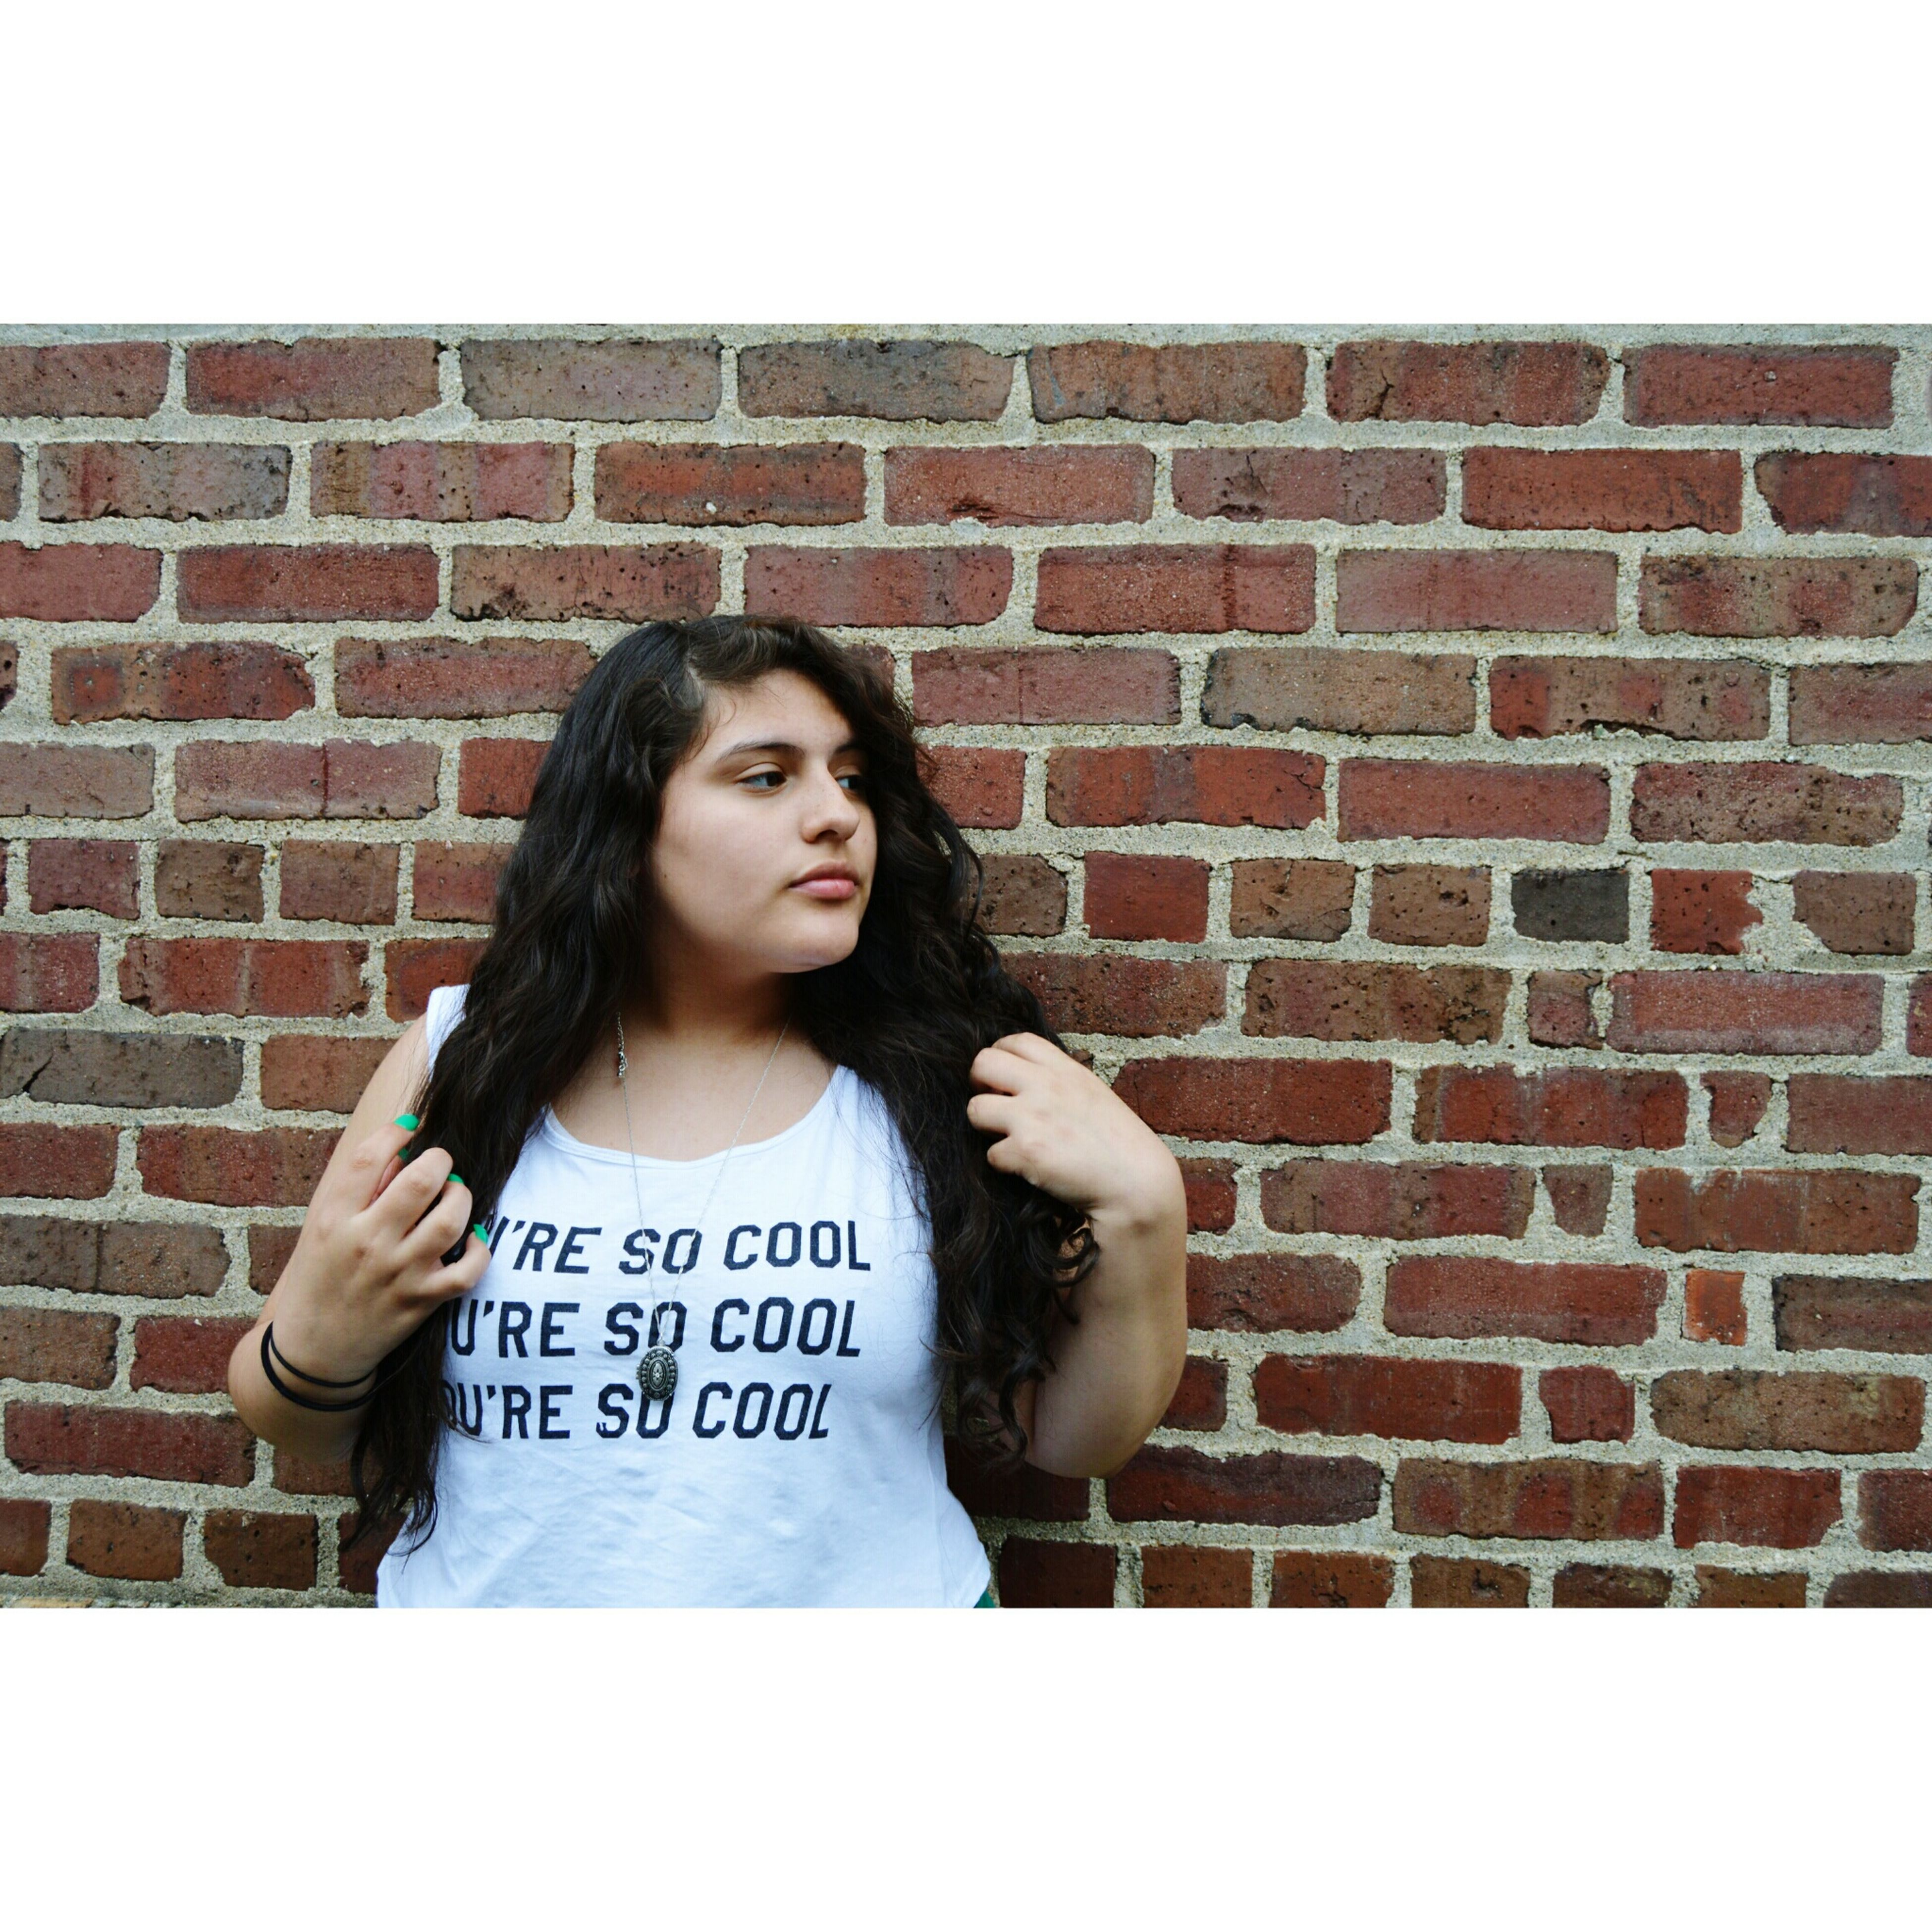 text, person, brick wall, wall - building feature, front view, portrait, western script, looking at camera, young adult, communication, lifestyles, young women, wall, waist up, standing, casual clothing, long hair, happiness